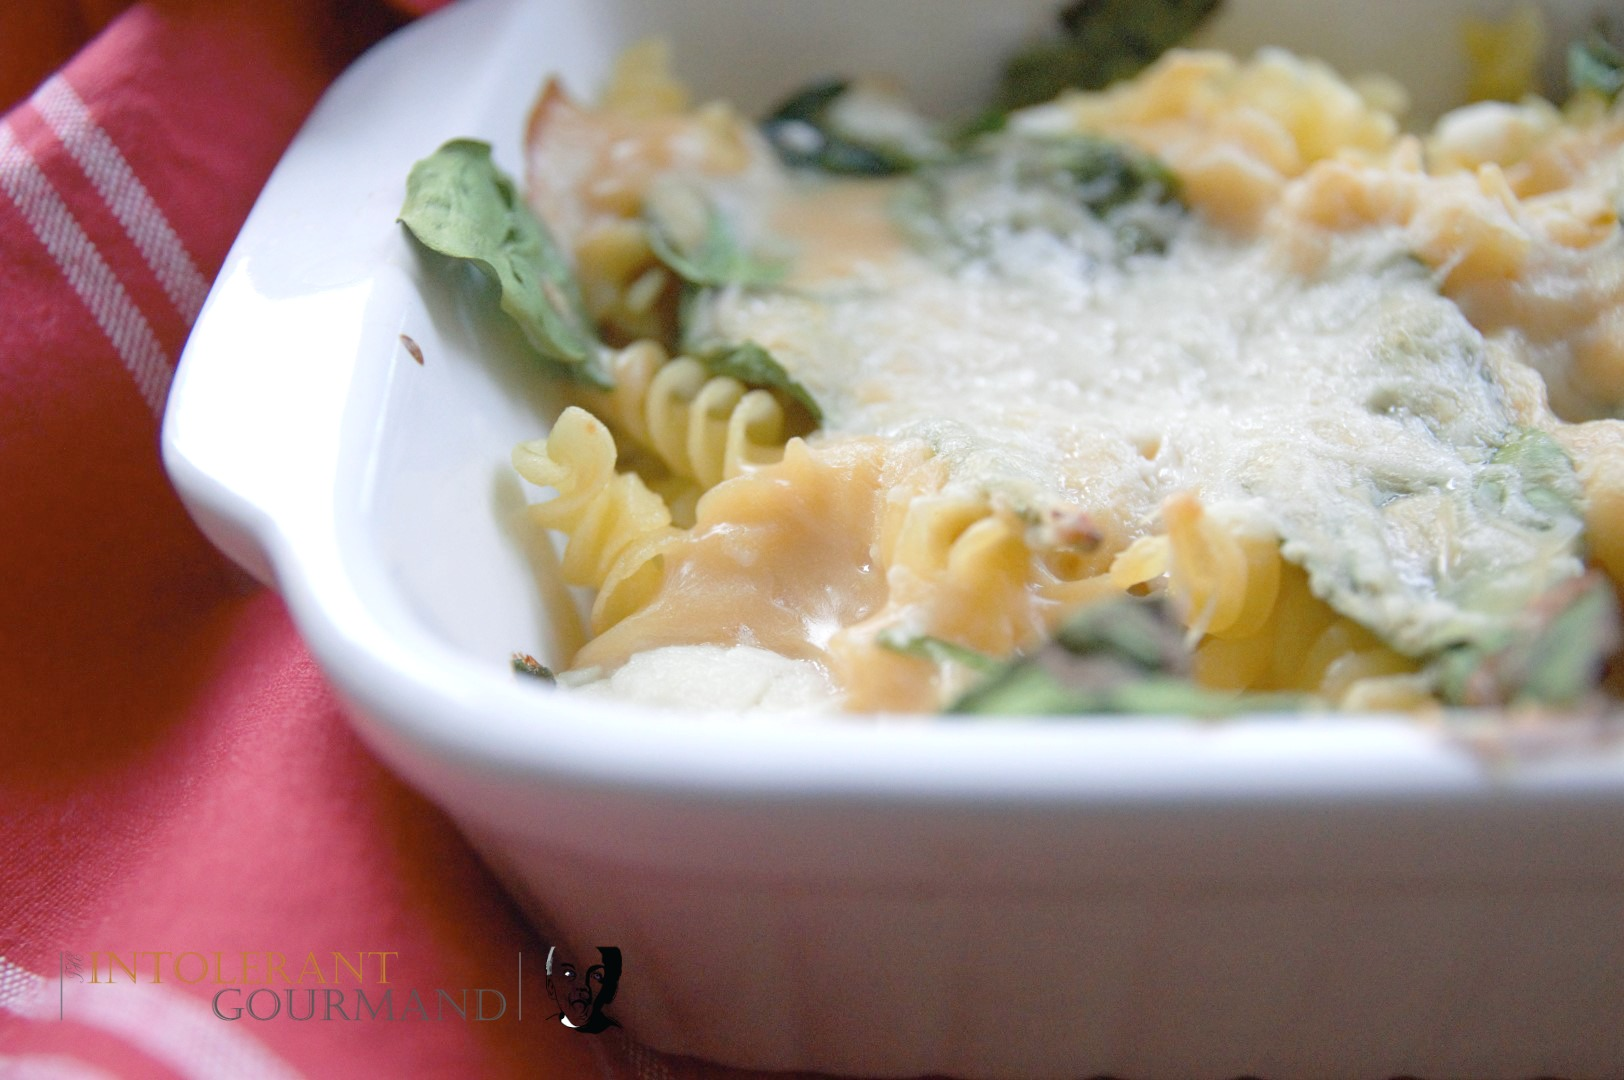 Macaroni Cheese - An iconic ultimate comfort food that's also a quick family dinner that everyone will love! It's also gluten-free too! www.intolerantgourmand.com